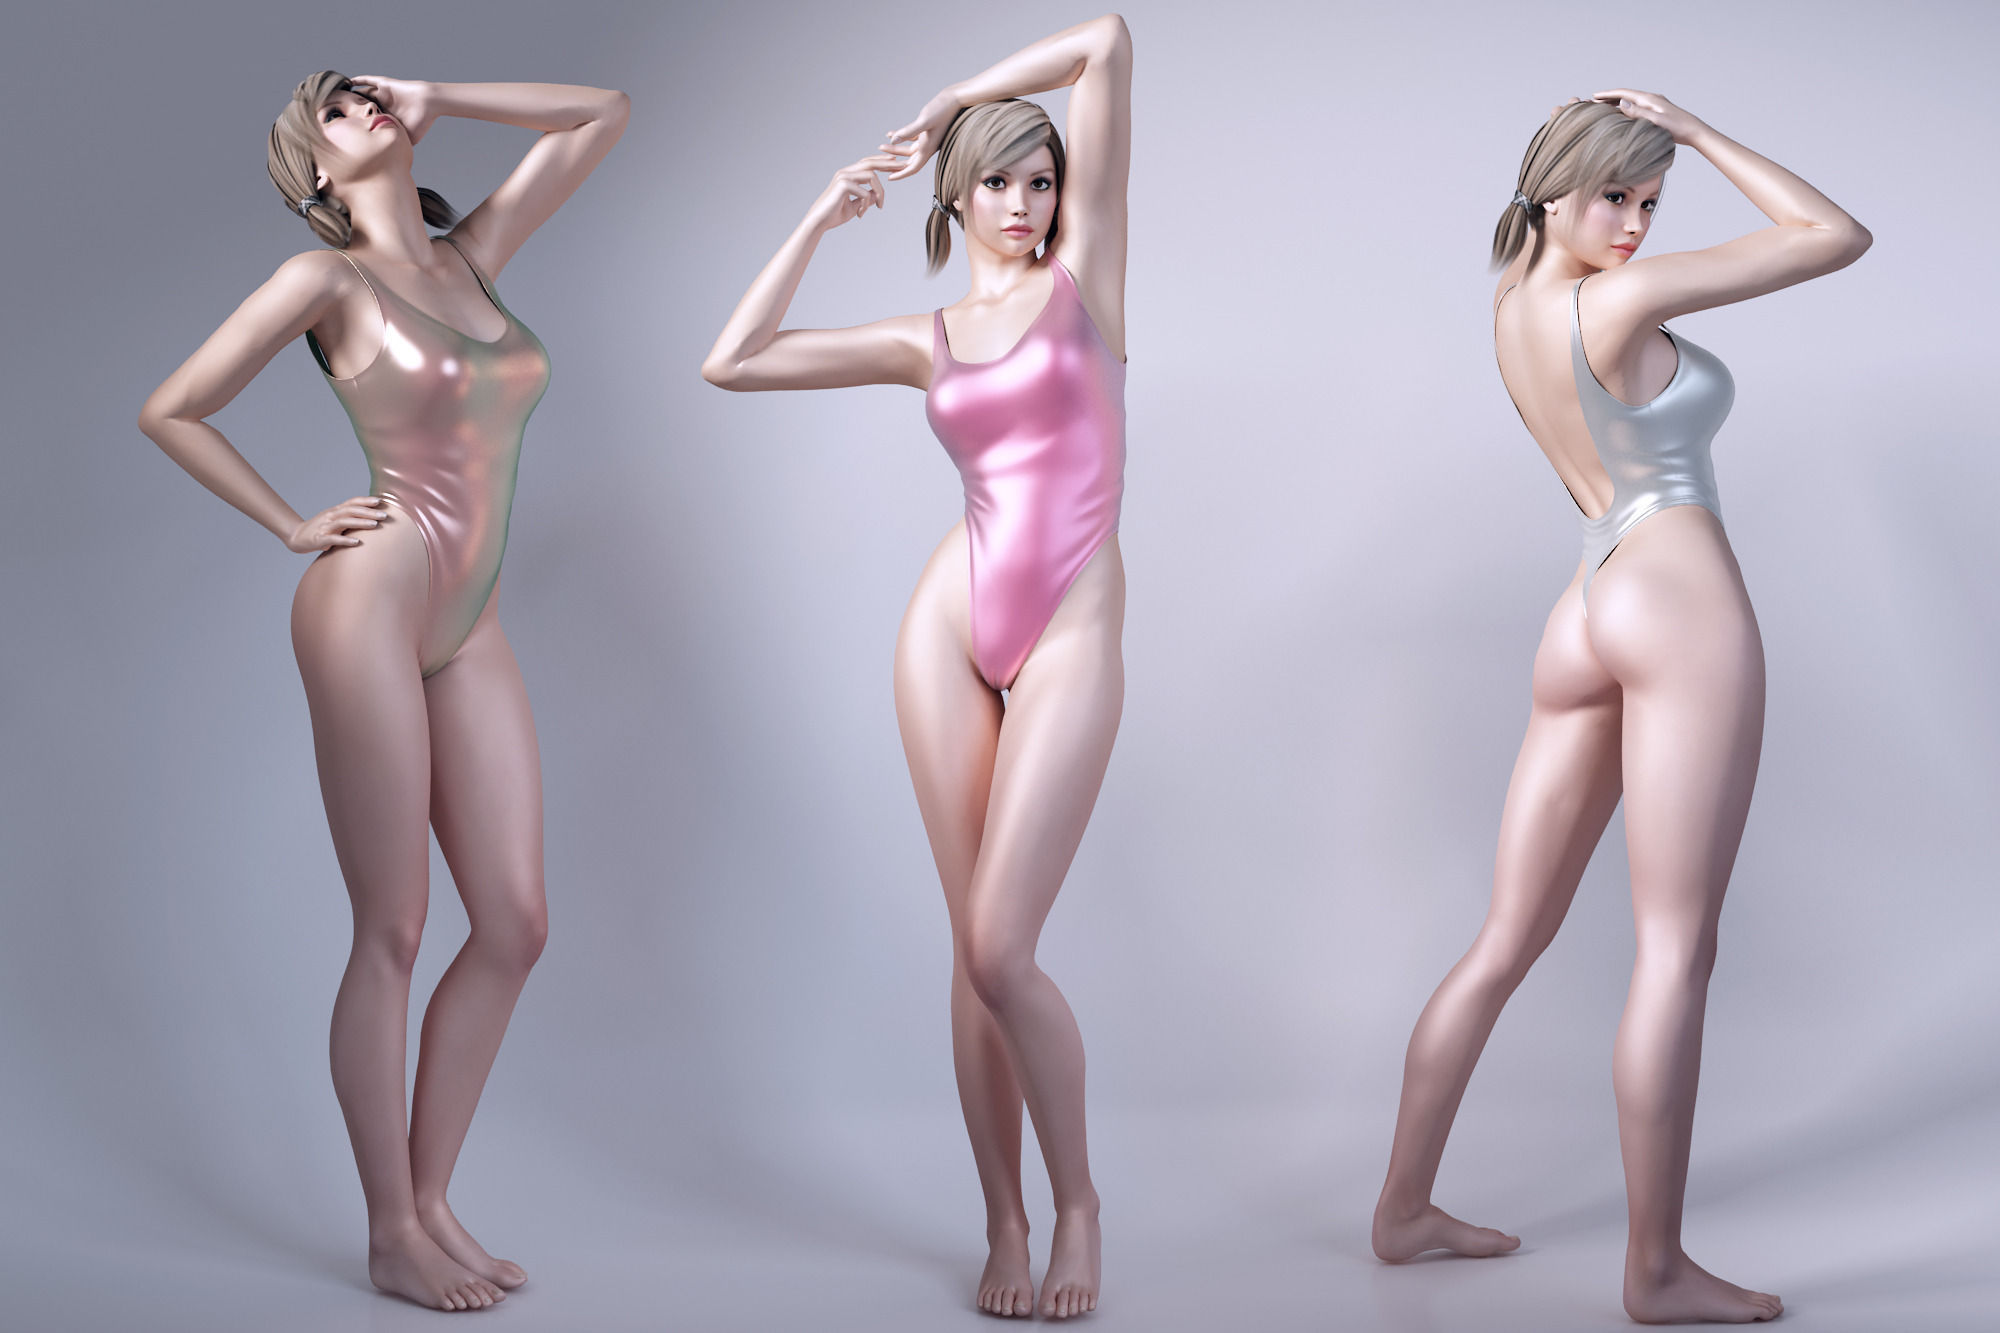 3d nude female wallpaper exposed film